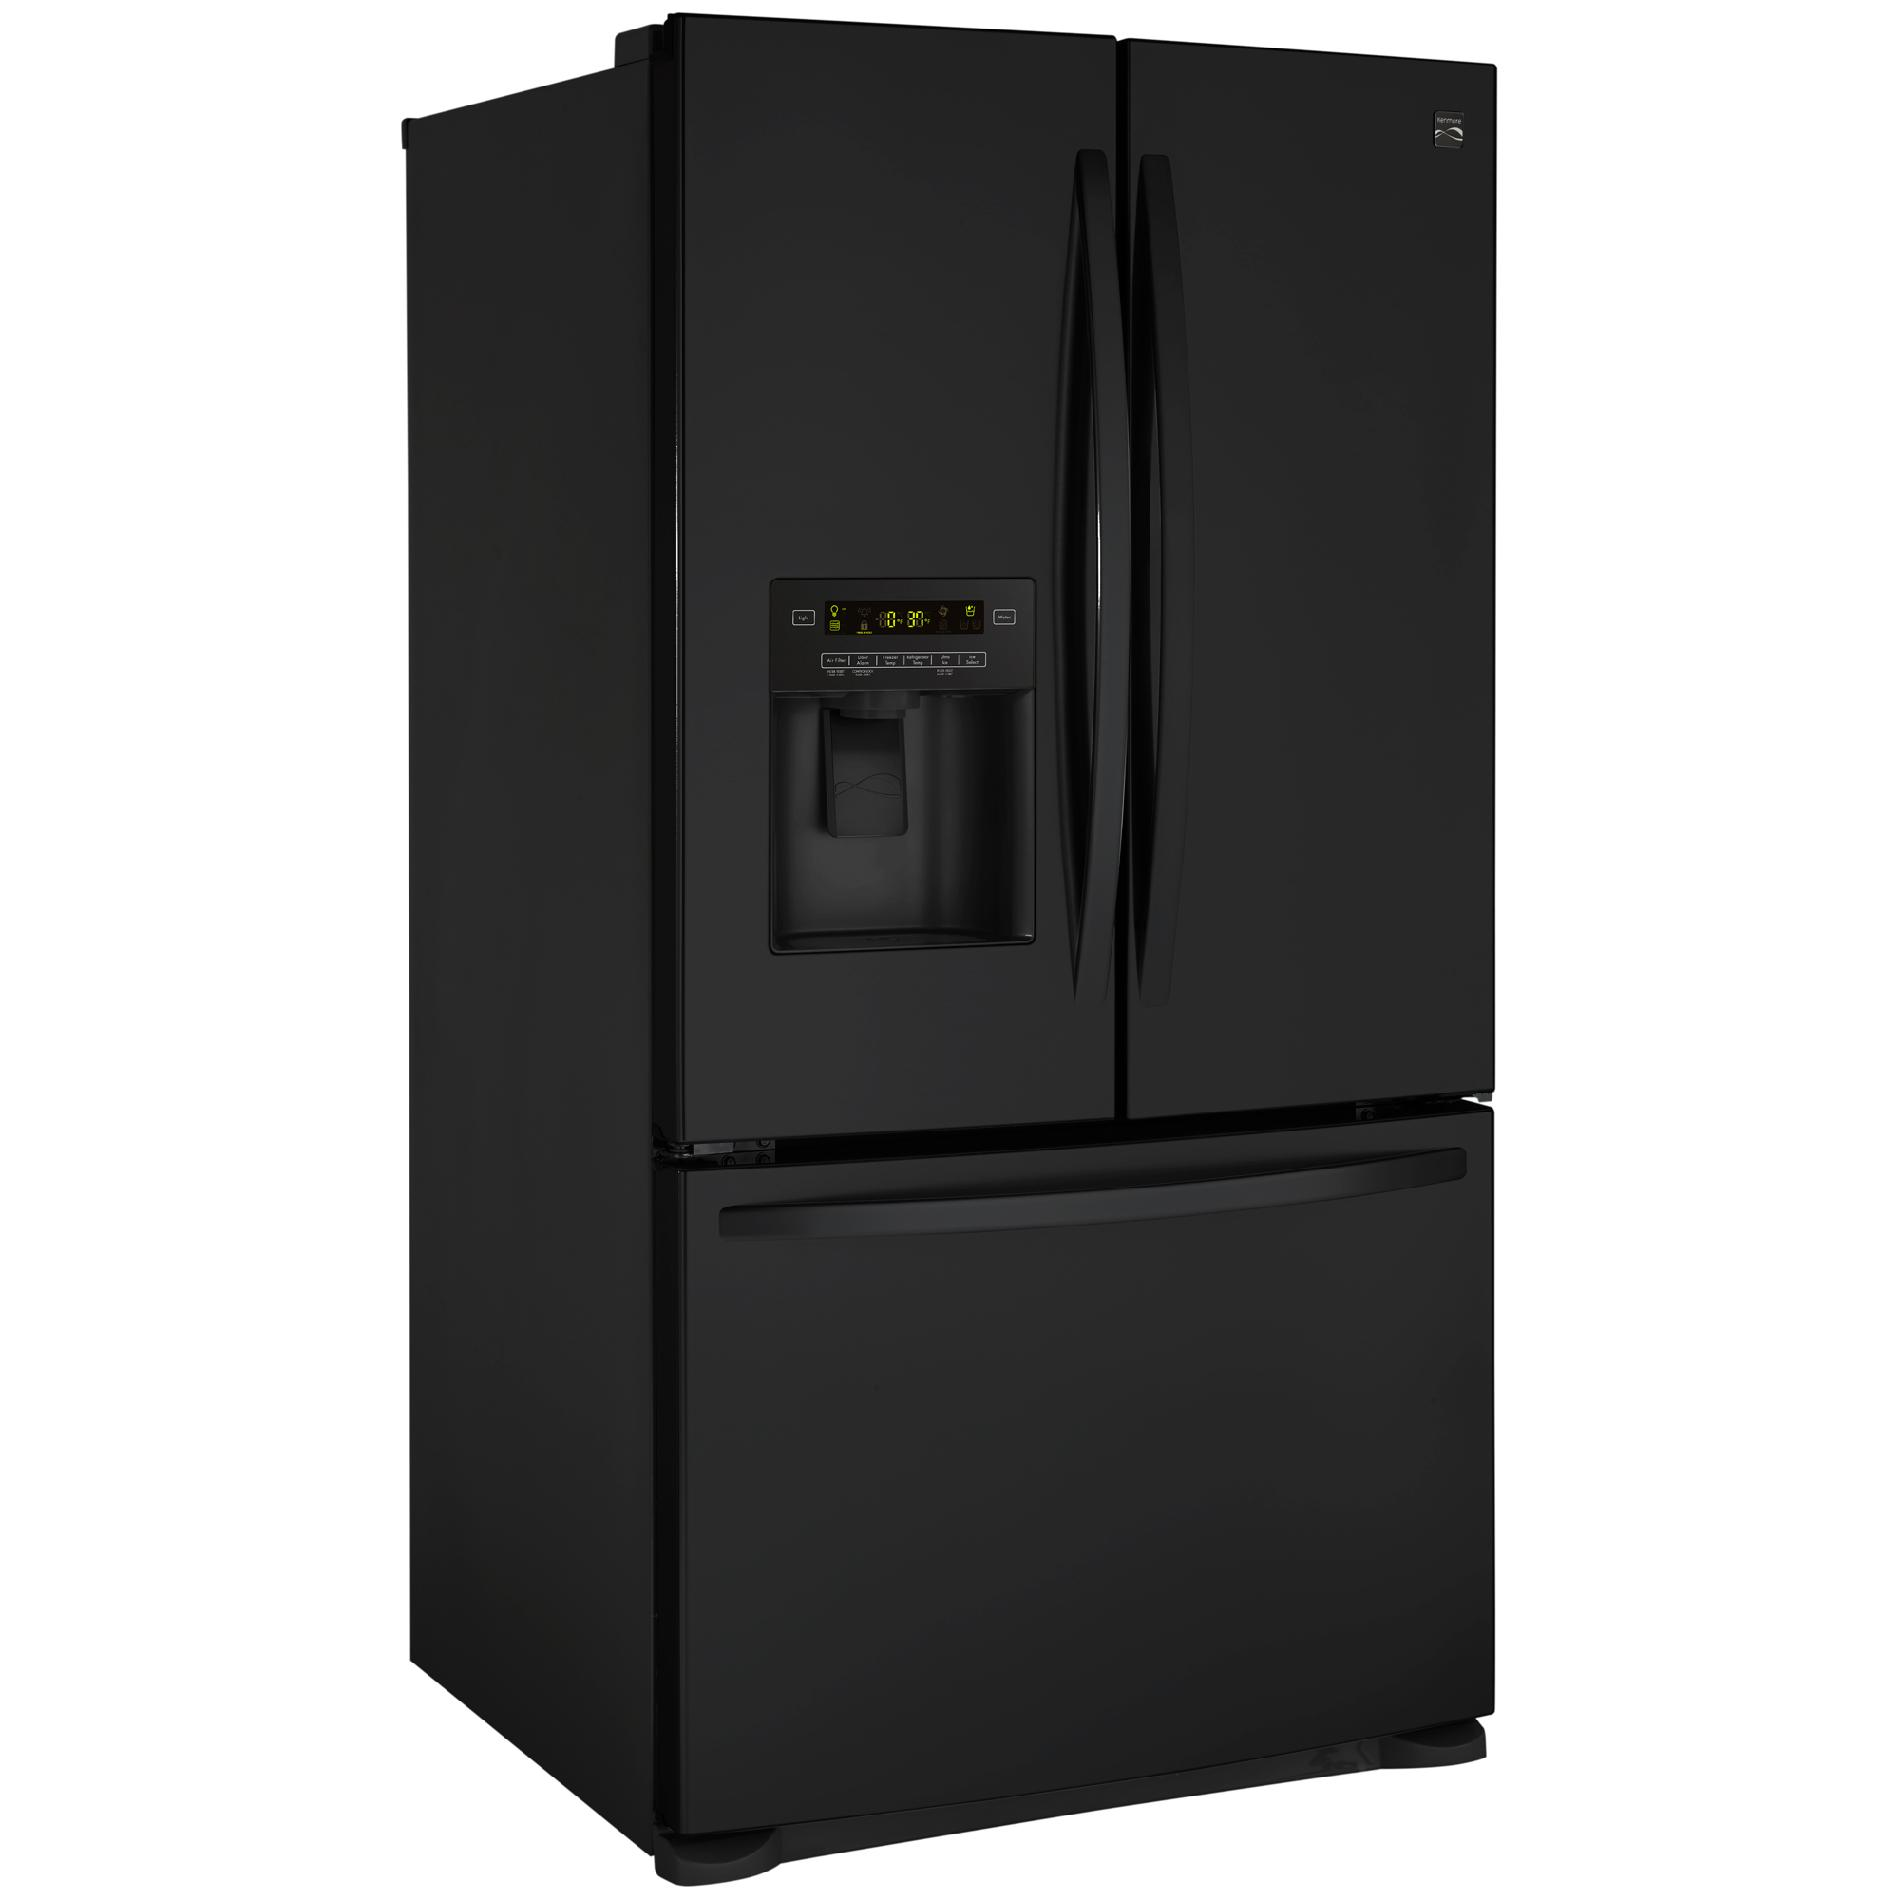 Kenmore 73059 26.8 Cu. Ft. French Door Bottom-Freezer Refrigerator